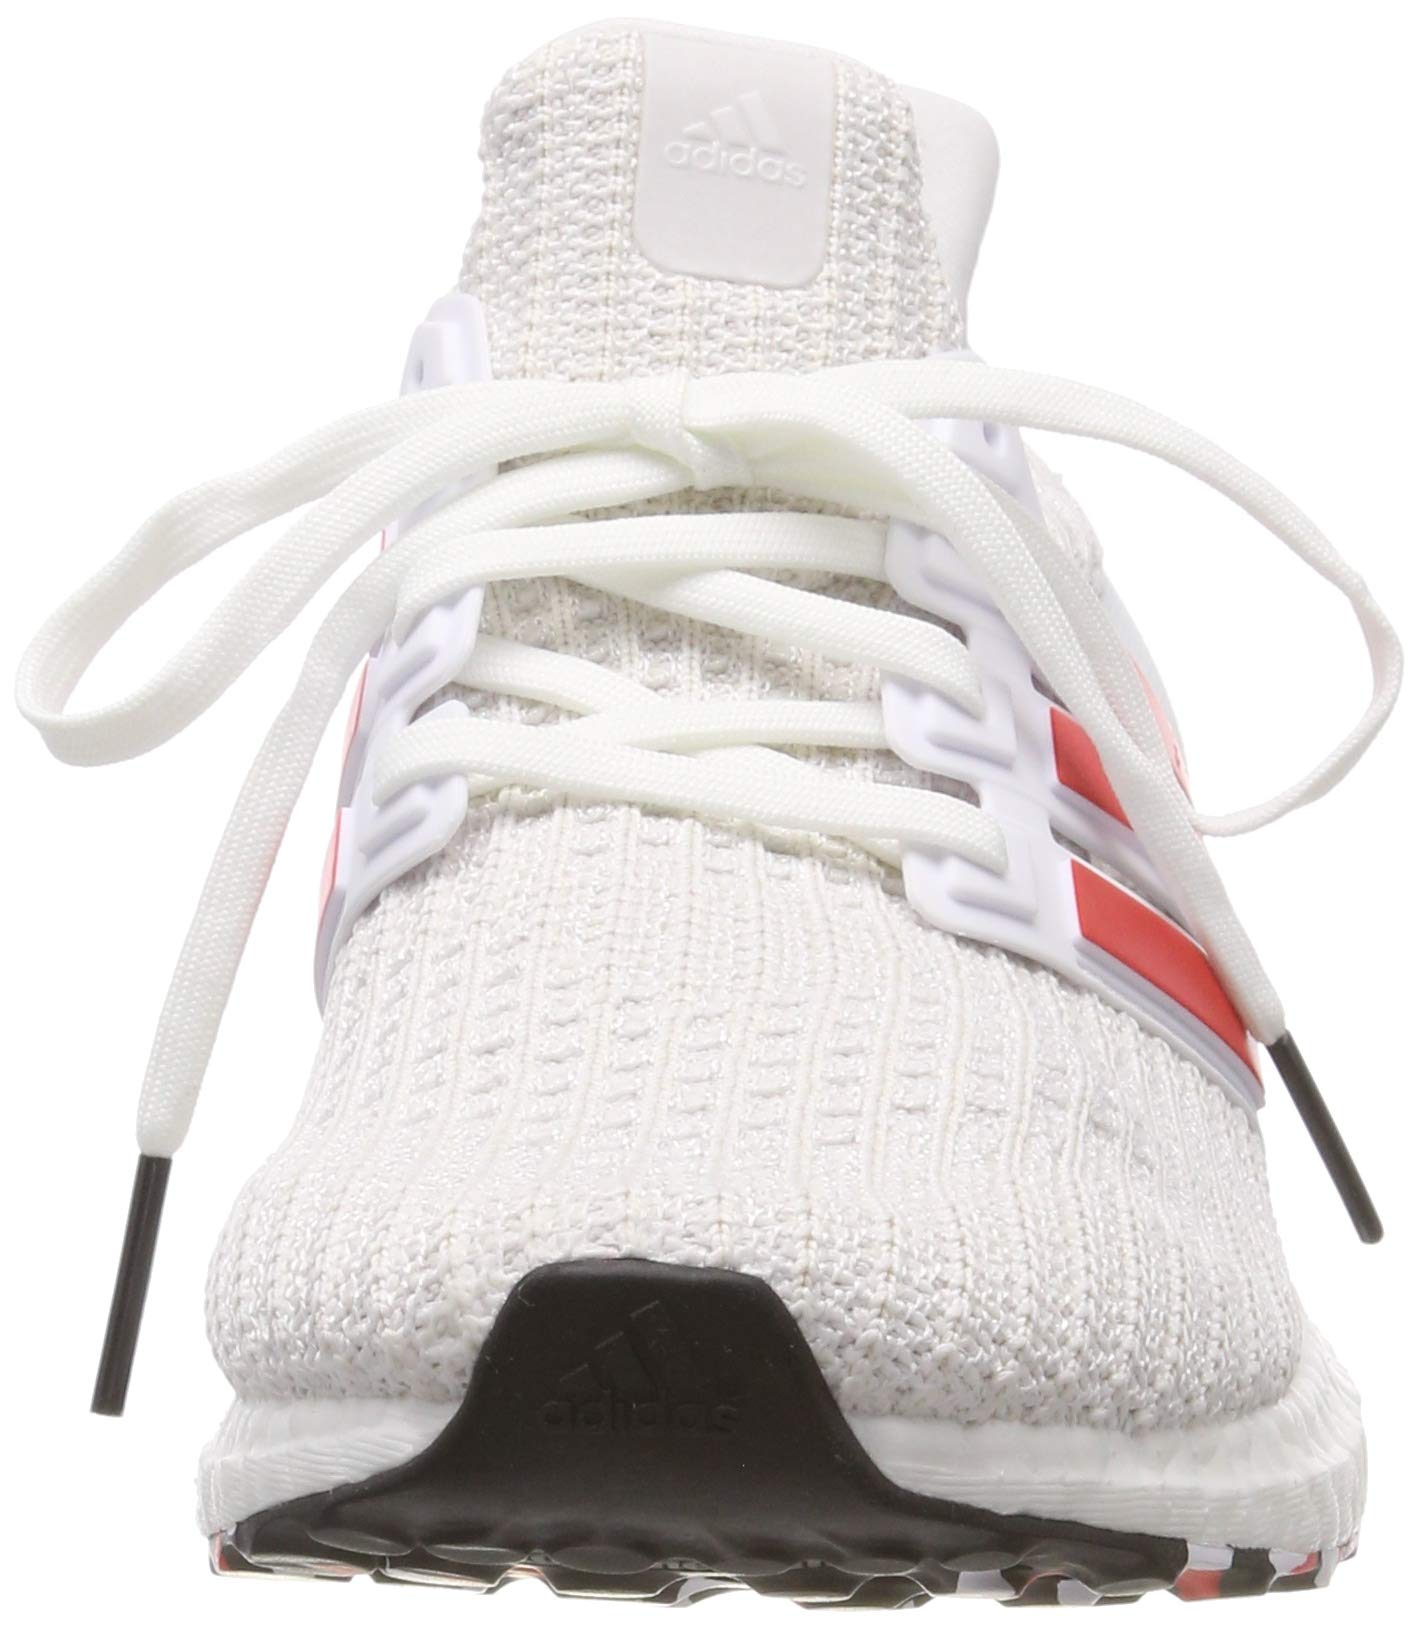 71kAfWWlipL - adidas Men's Ultraboost Running Shoes